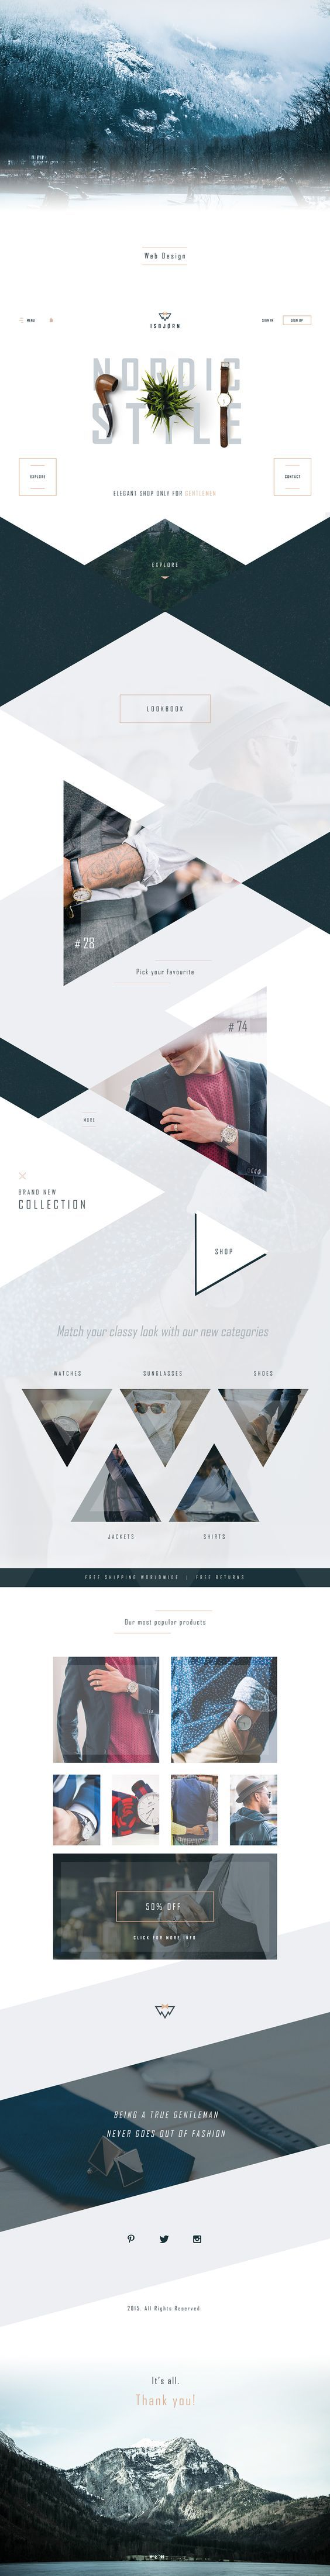 Fashion exclusive watch #webdesign #design #inspiration #layout idea